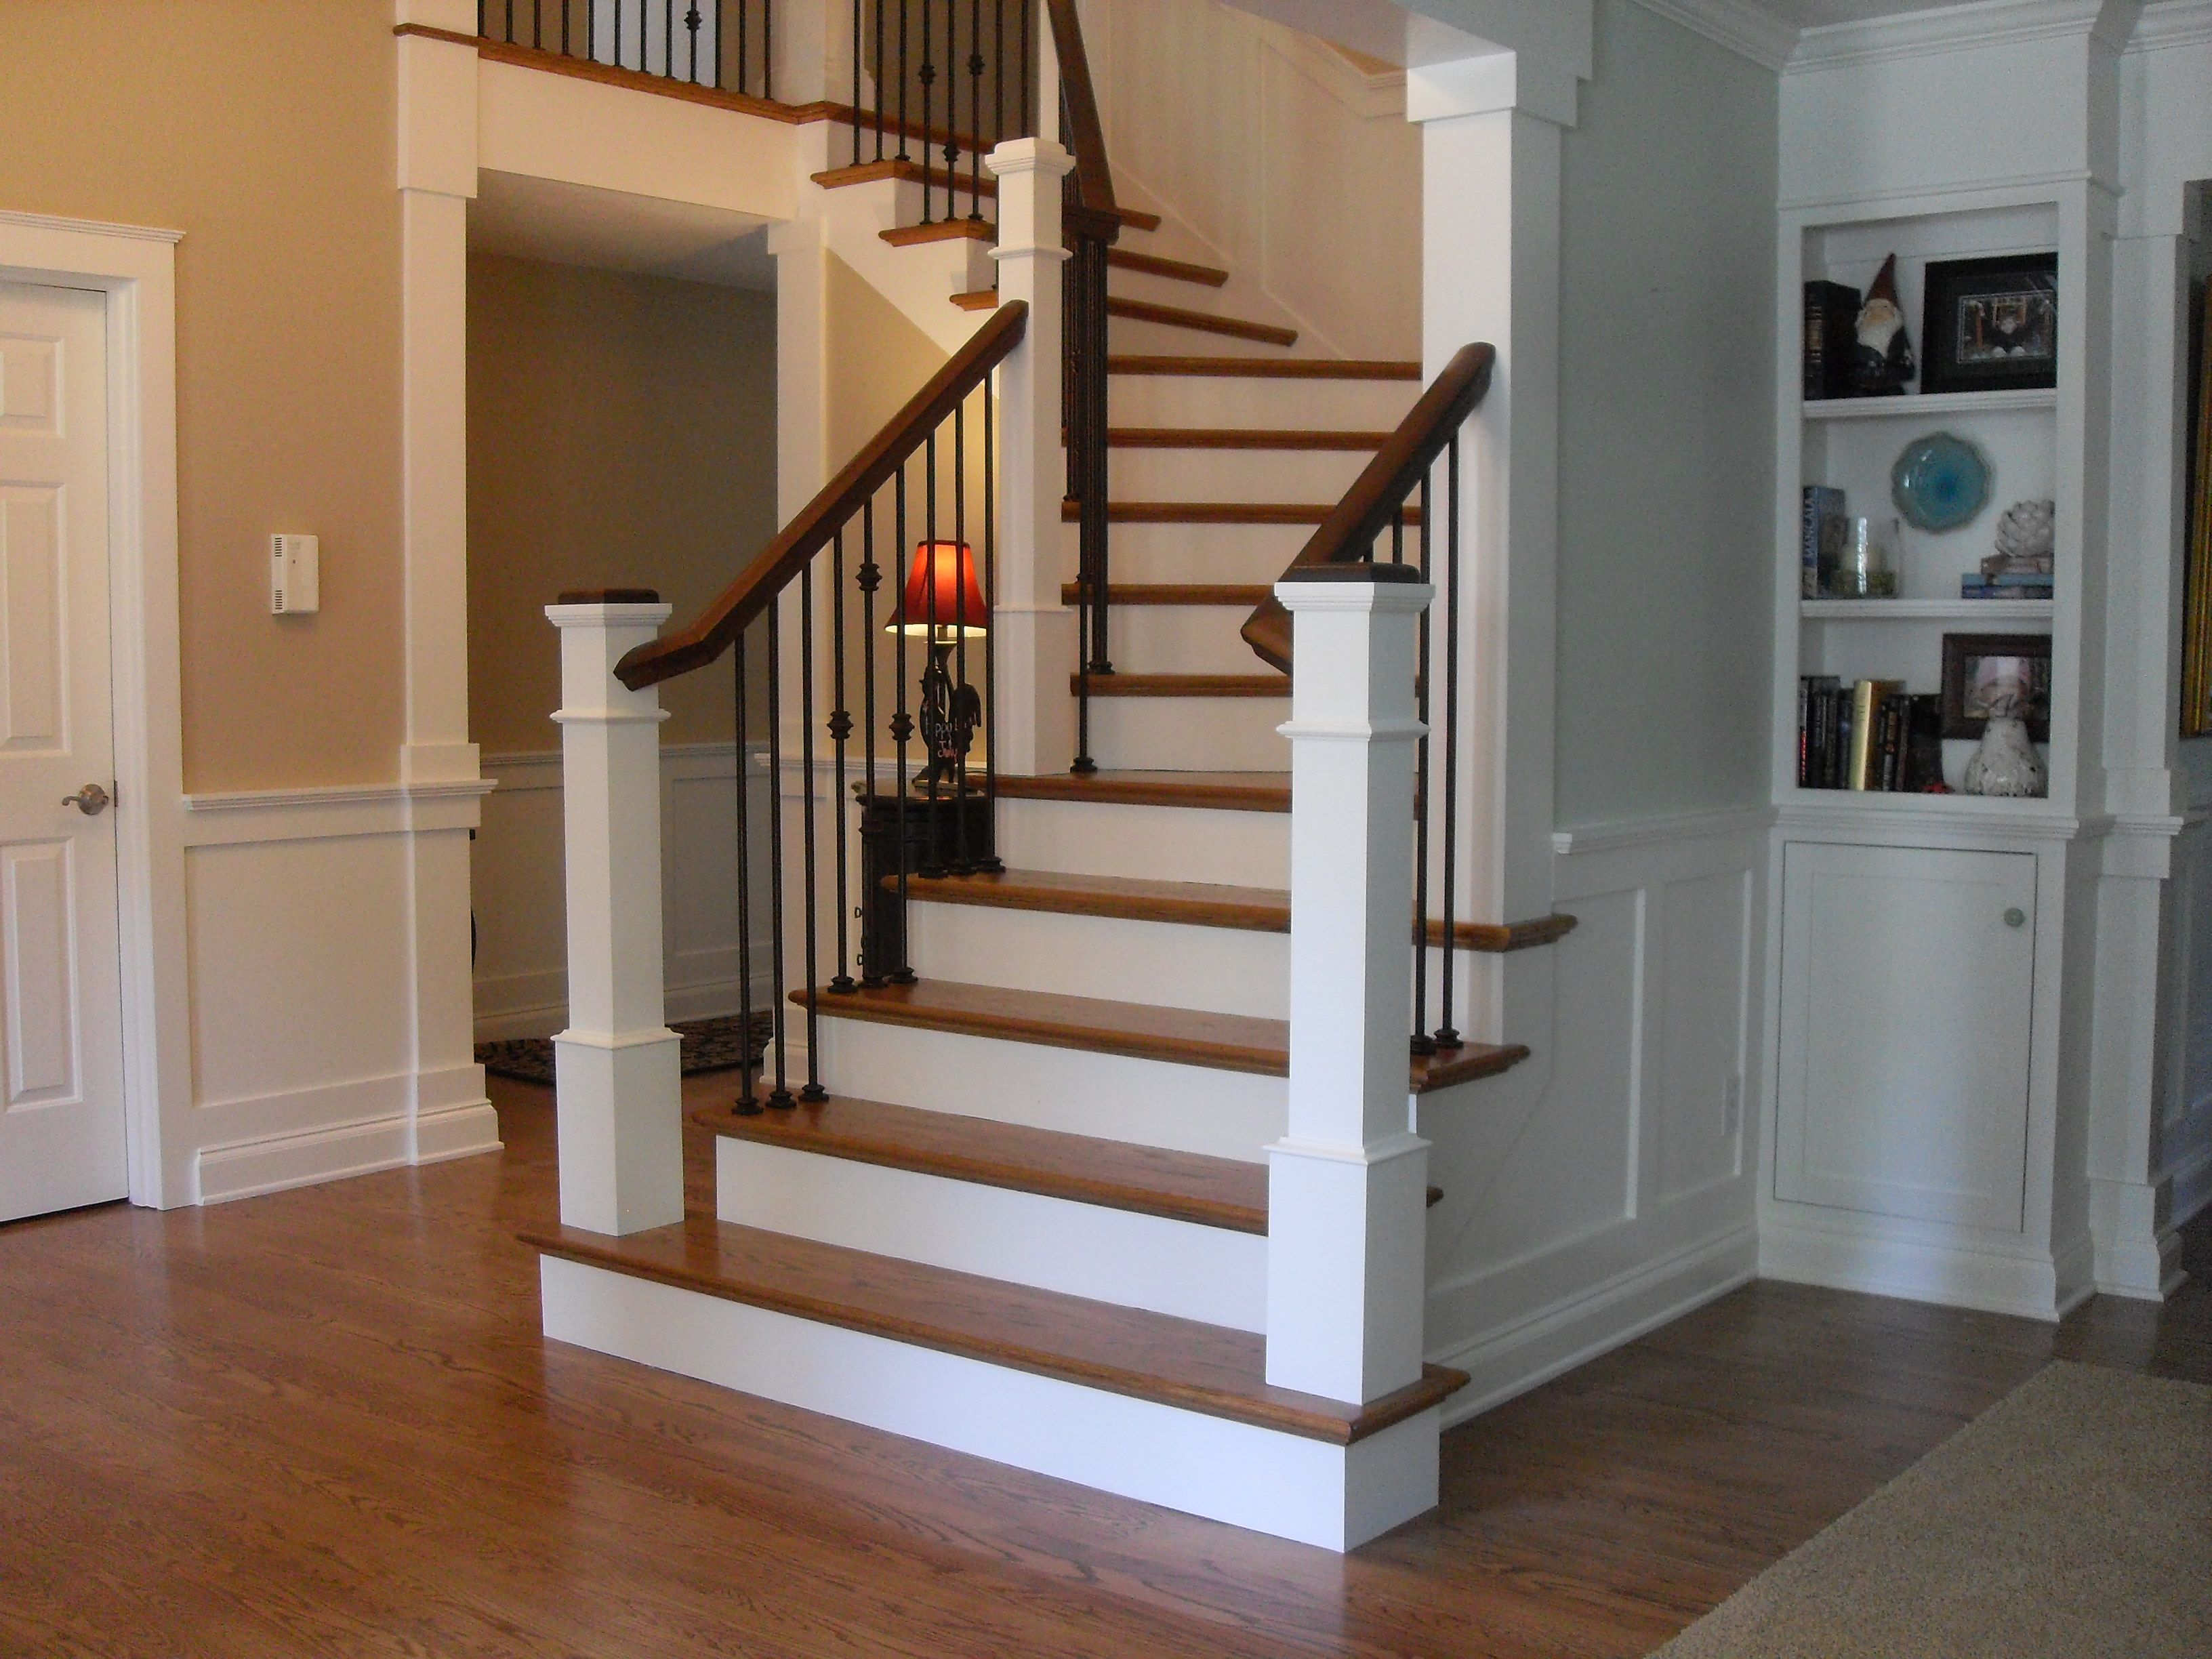 box newel post   Google Search   Traditional staircase ...